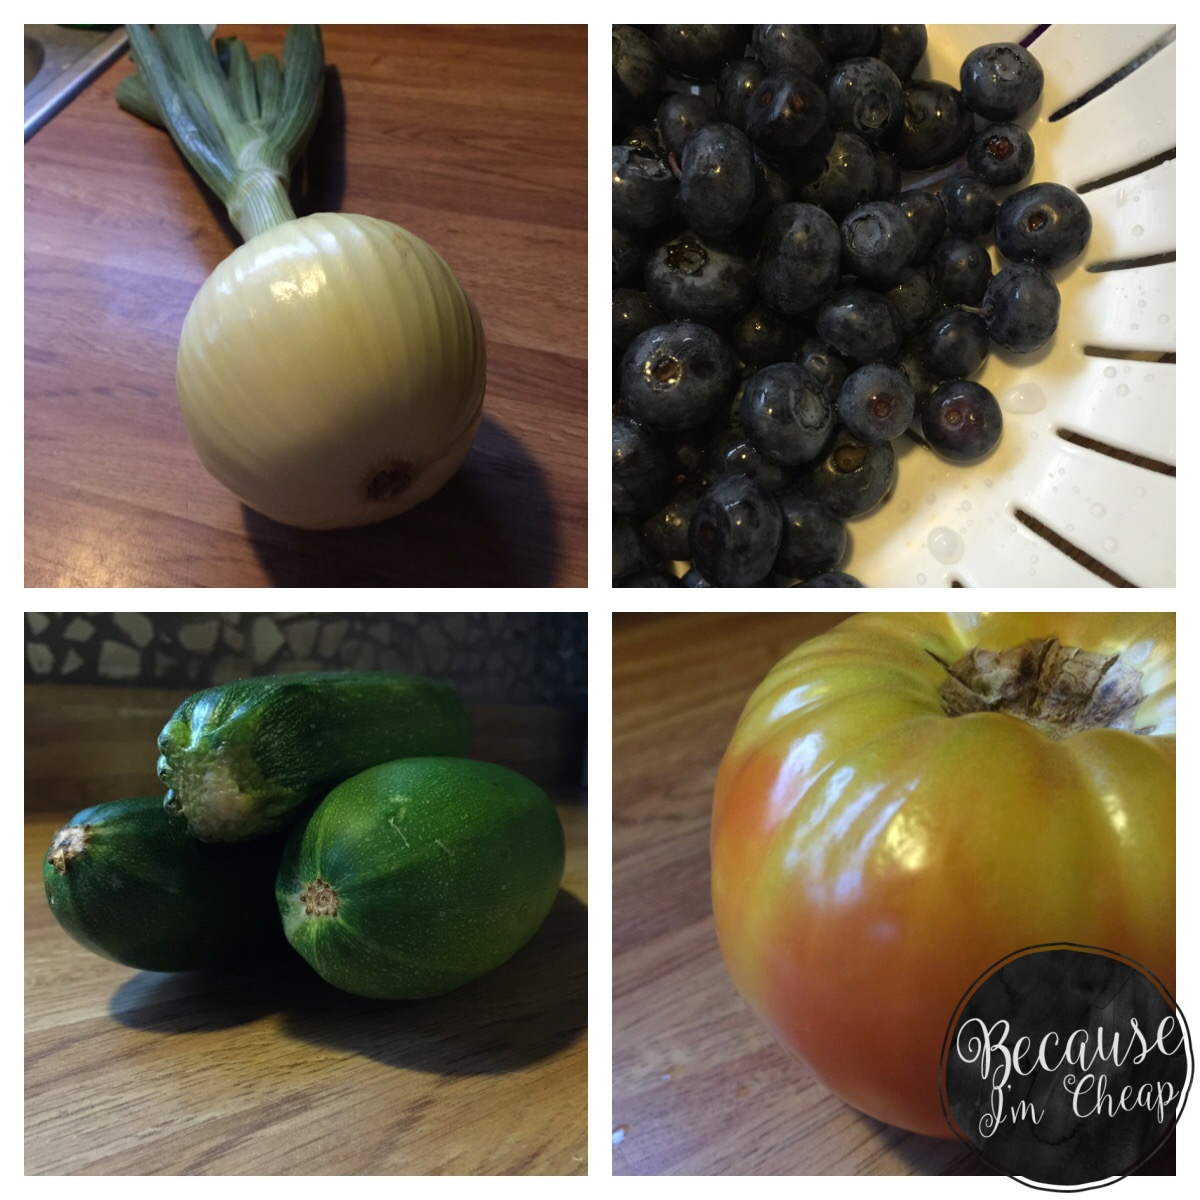 Vegetables from JRs General Store | Because Im Cheap